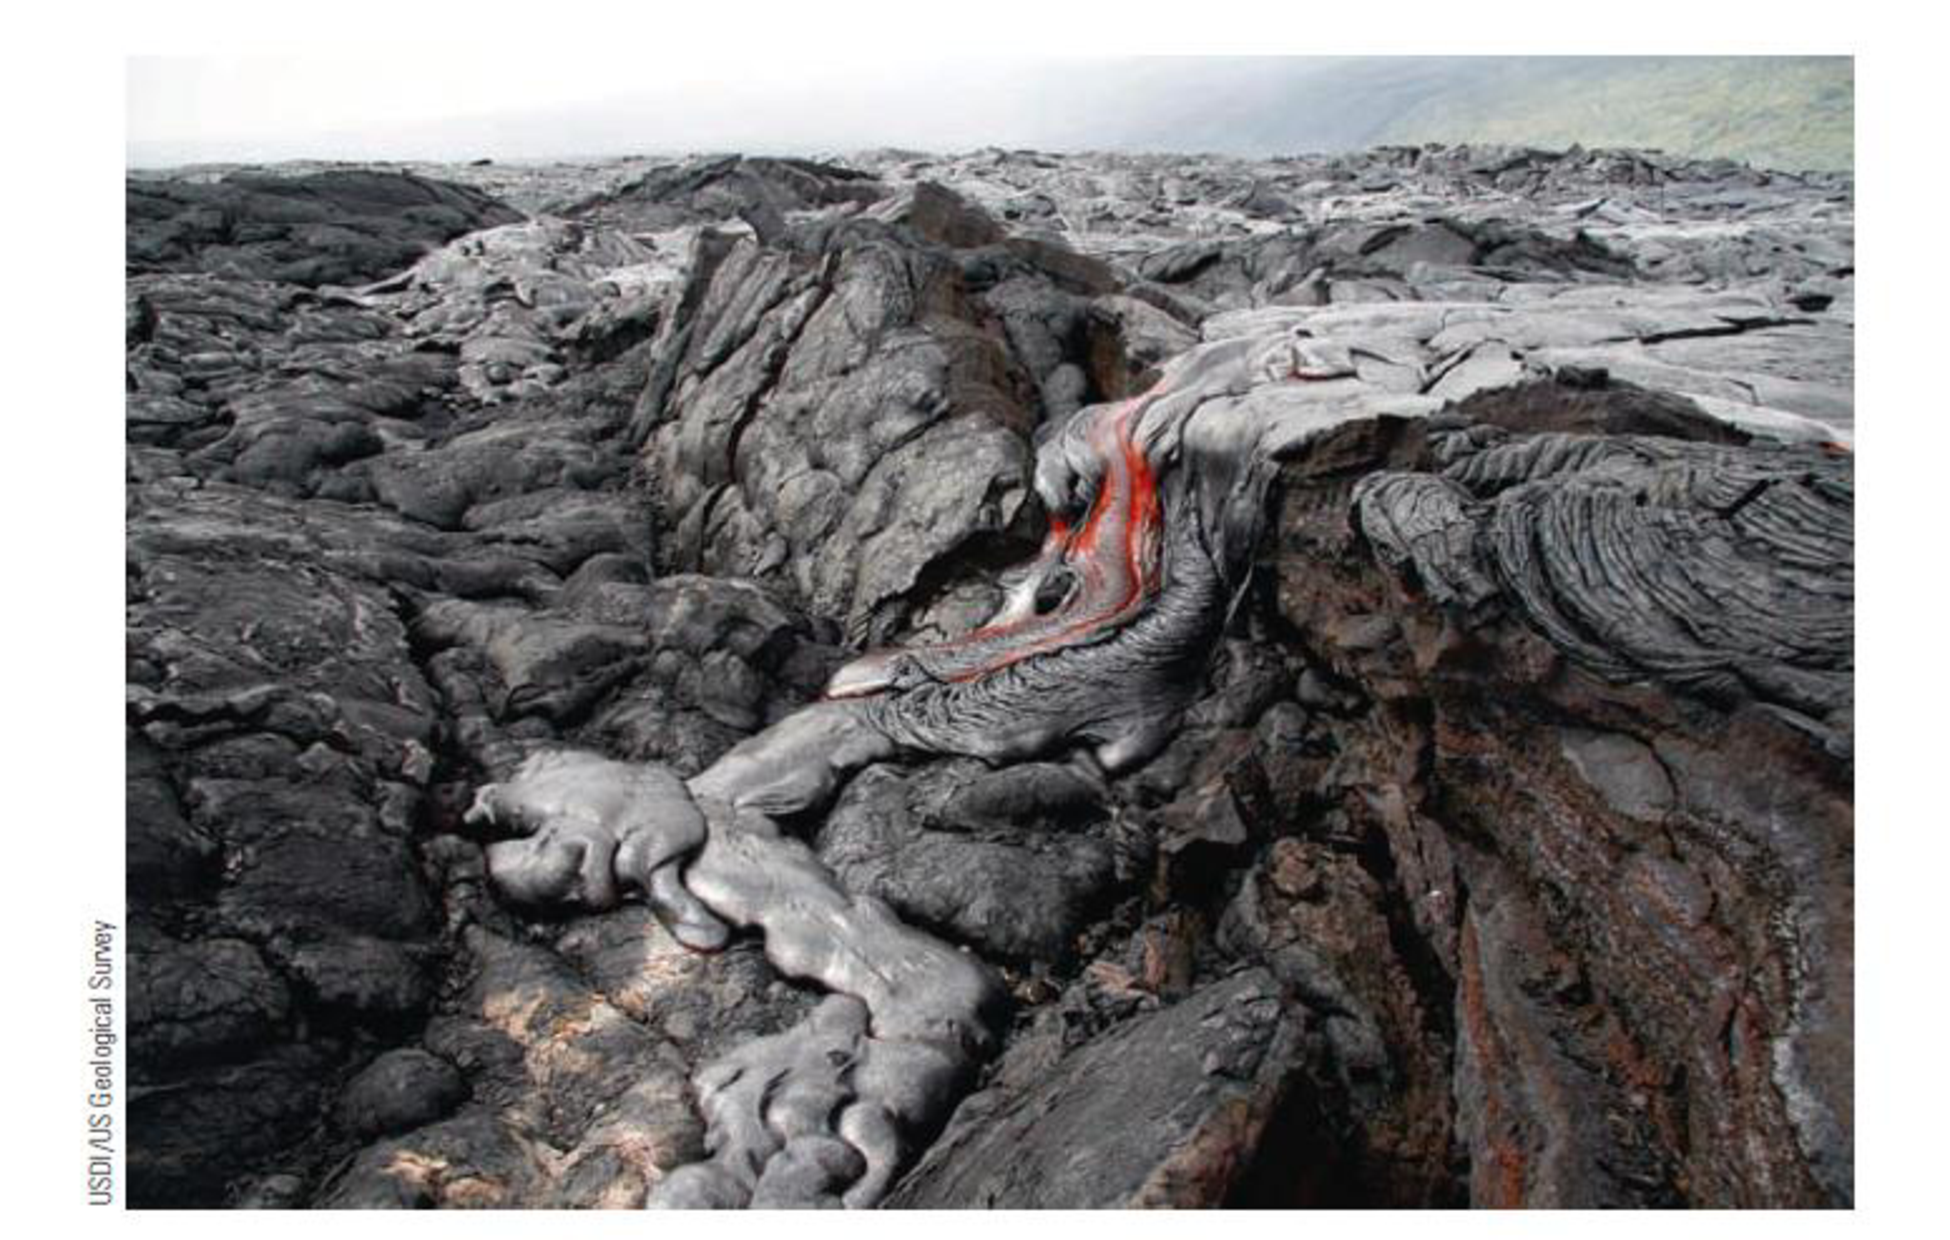 Chapter 10, Problem 8FQ, FIGURE 10.8 Recently erupted basaltic lava on the island of Hawaii. Molten basalt typically erupts